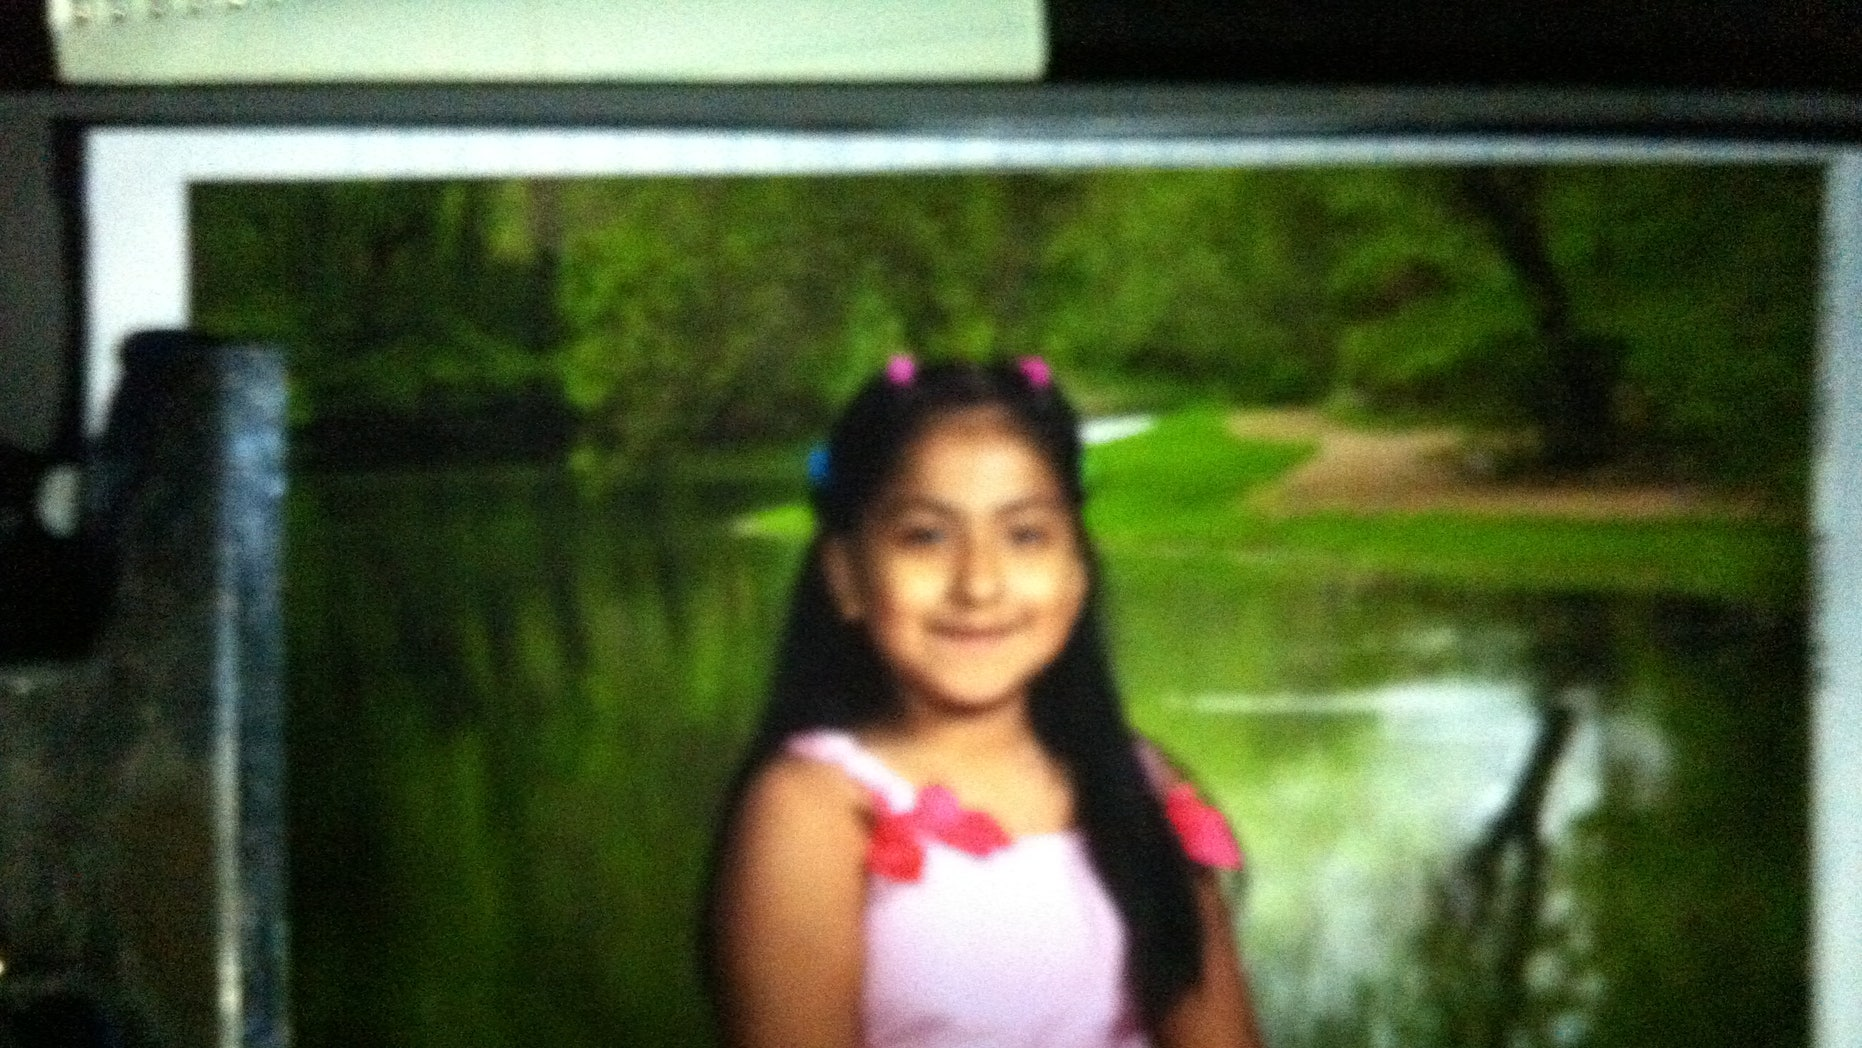 This photo provided by the Oklahoma Department of Public Safety, shows Montserrat Aguirre. An Amber Alert has been issued for the 8-year-old Aguirre, of Tulsa, who was apparently snatched by a motorist from outside an apartment. Aguirre was playing on a swing set at about 7:20 p.m. Sunday, May 4, 2014, when a small white car pulled up and a white man got out, grabbed her and put her in the car before driving away. (AP/Oklahoma Department of Public Safety)